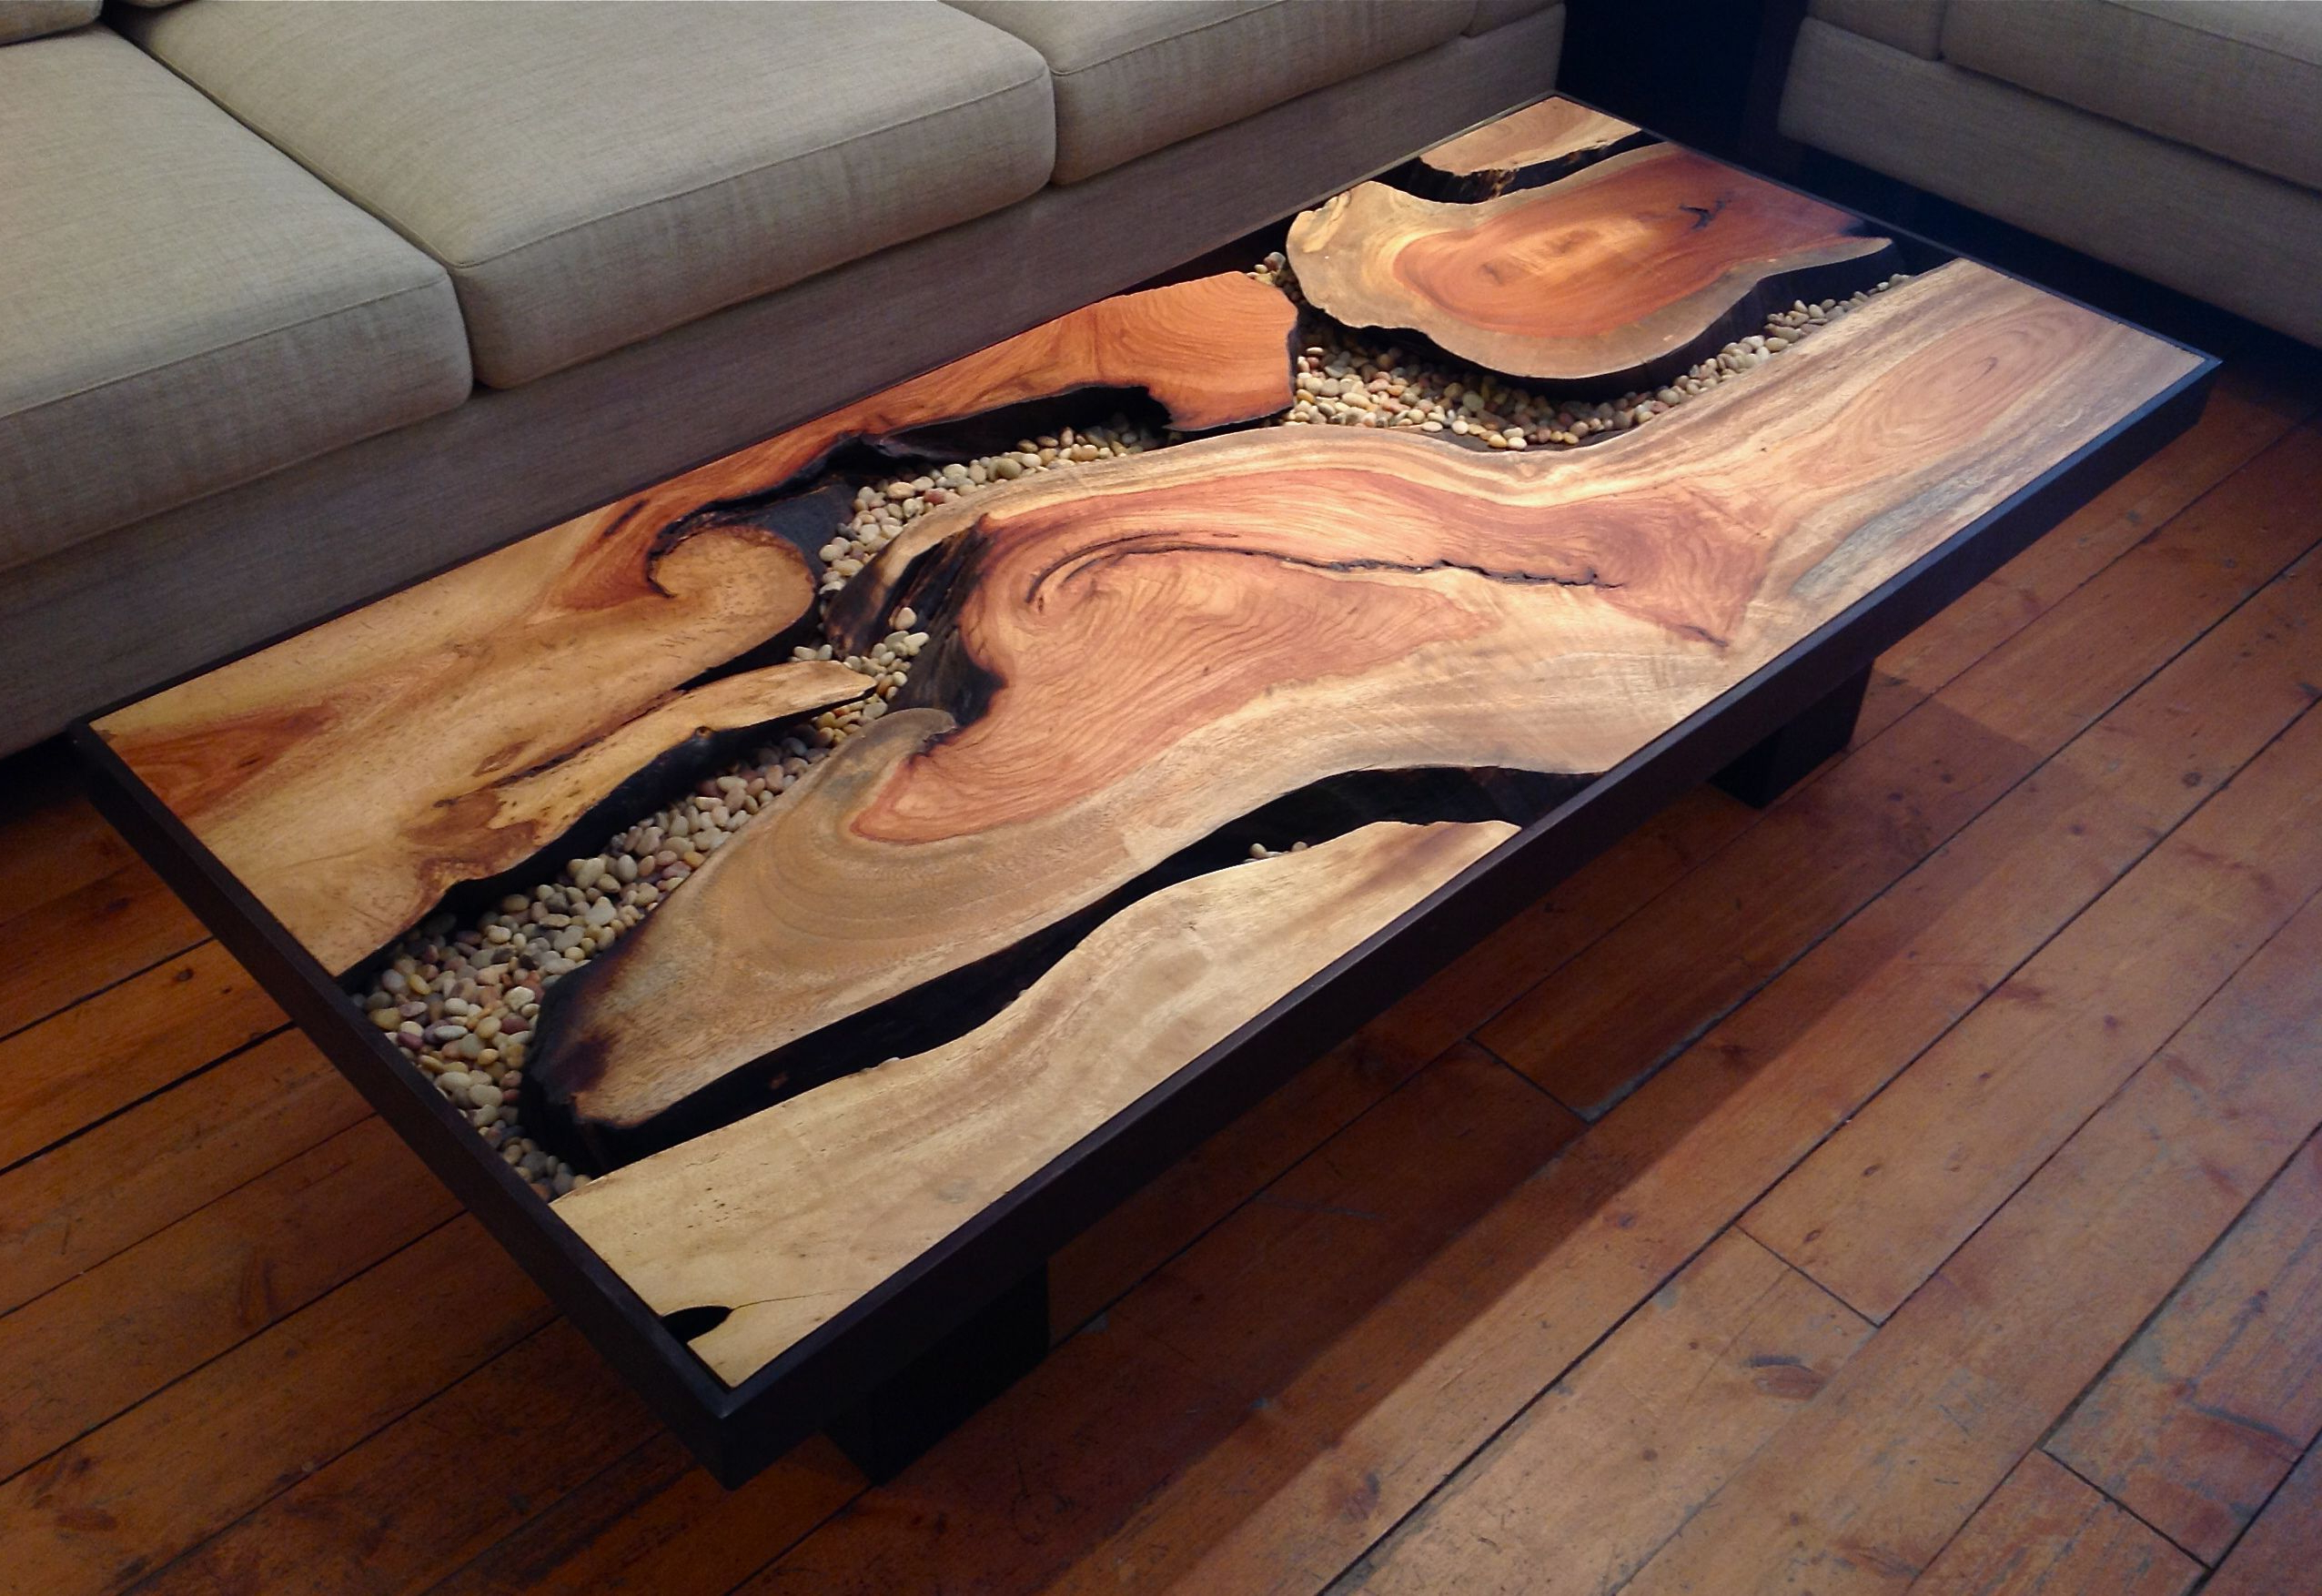 Tree Root Coffee Table Sequoia Santa Fe Sequoia Santa Fe X Table Base With Favorite Santa Fe Coffee Tables (View 9 of 20)